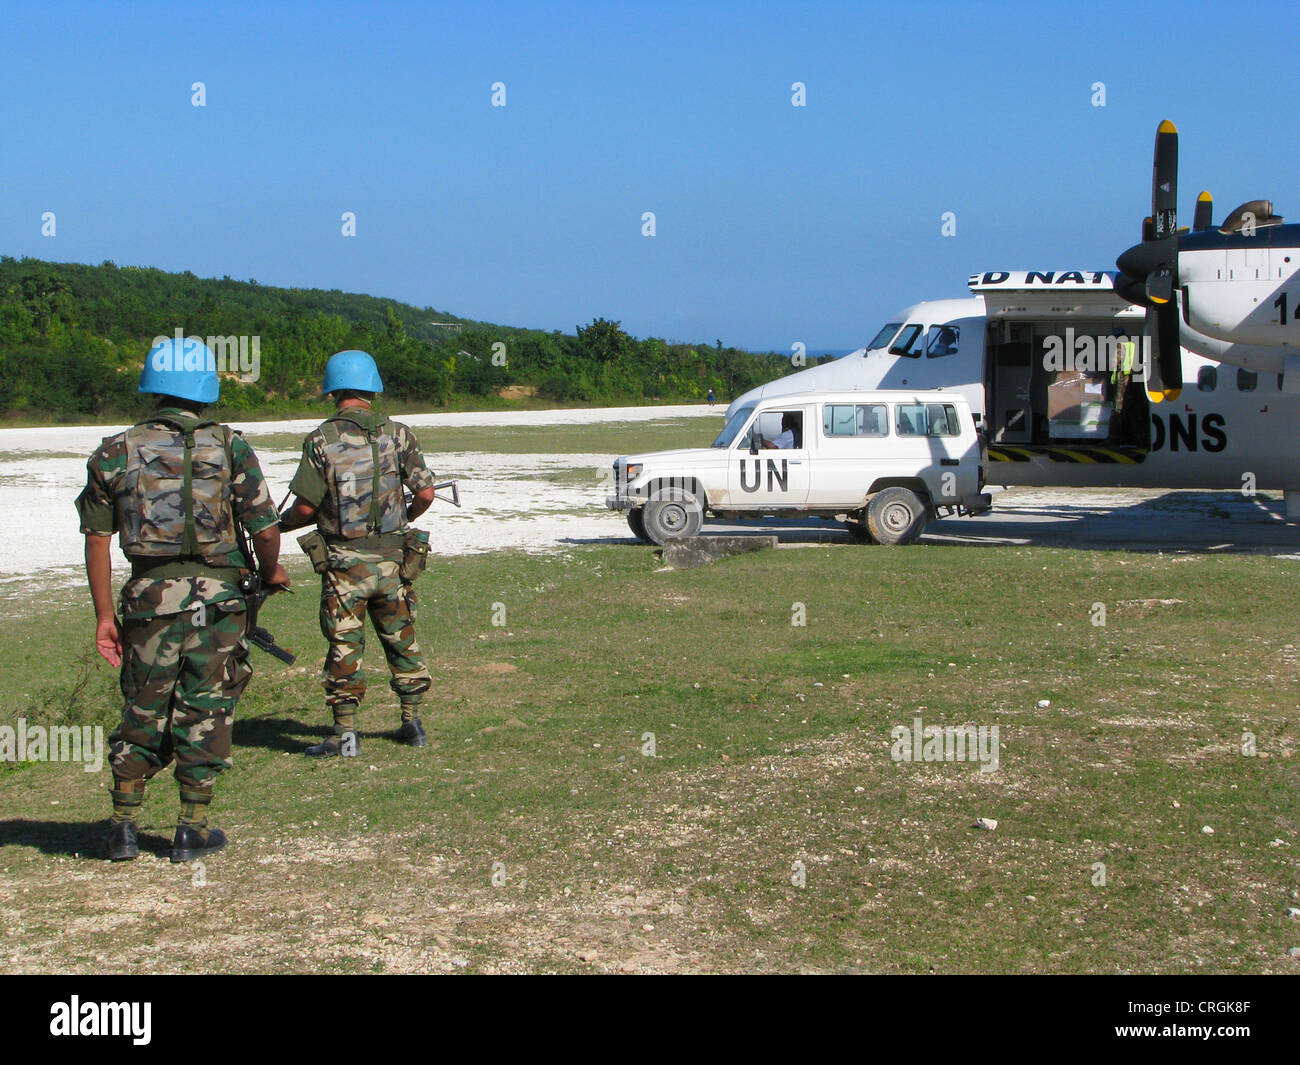 Soldiers of the 'United Nations Stabilisation Mission in Haiti' secure UN aircraft with machine gun and - Stock Image